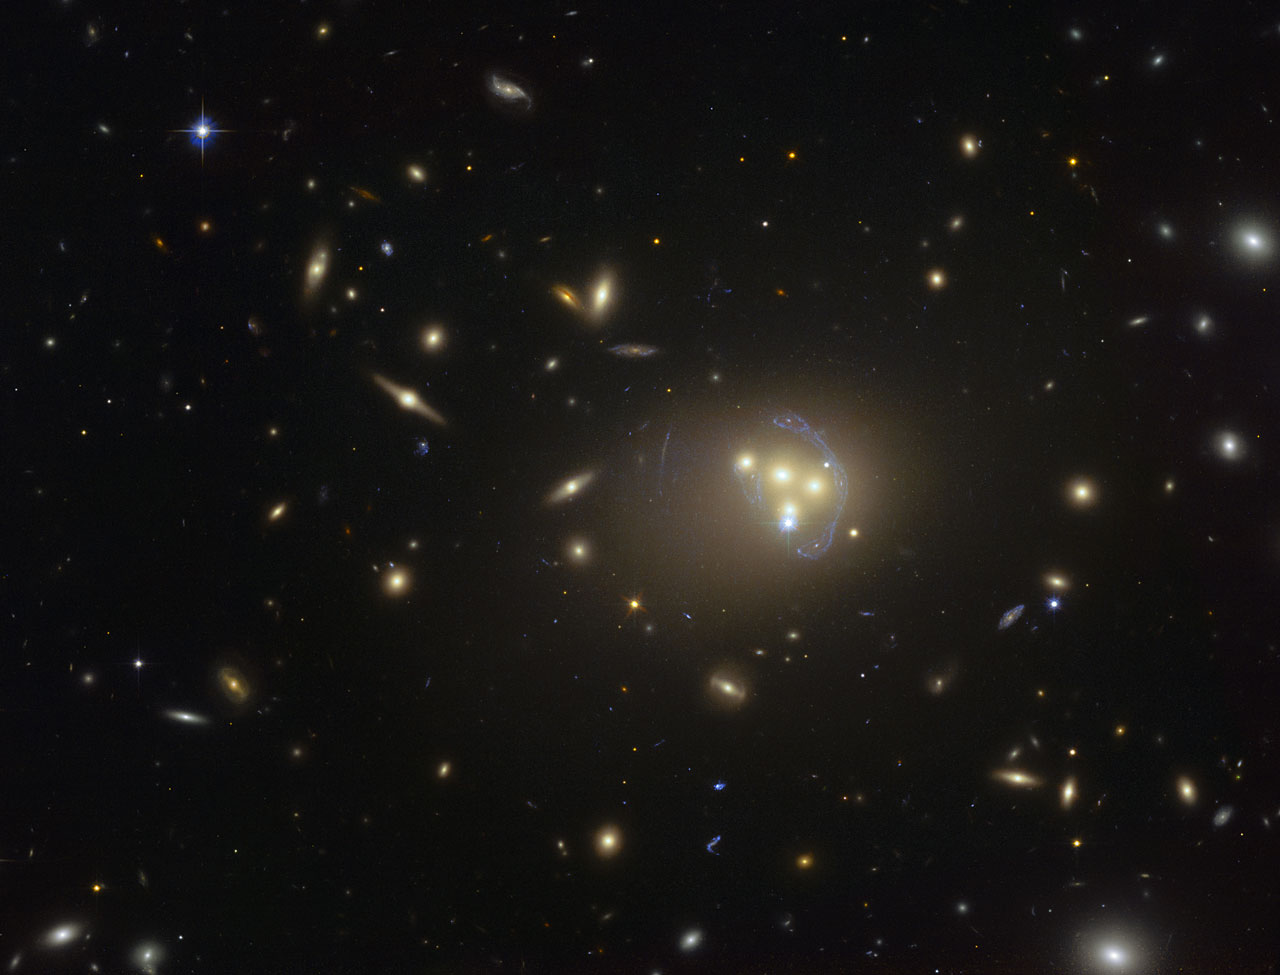 A wider view of Abell 3827, as taken by Hubble.